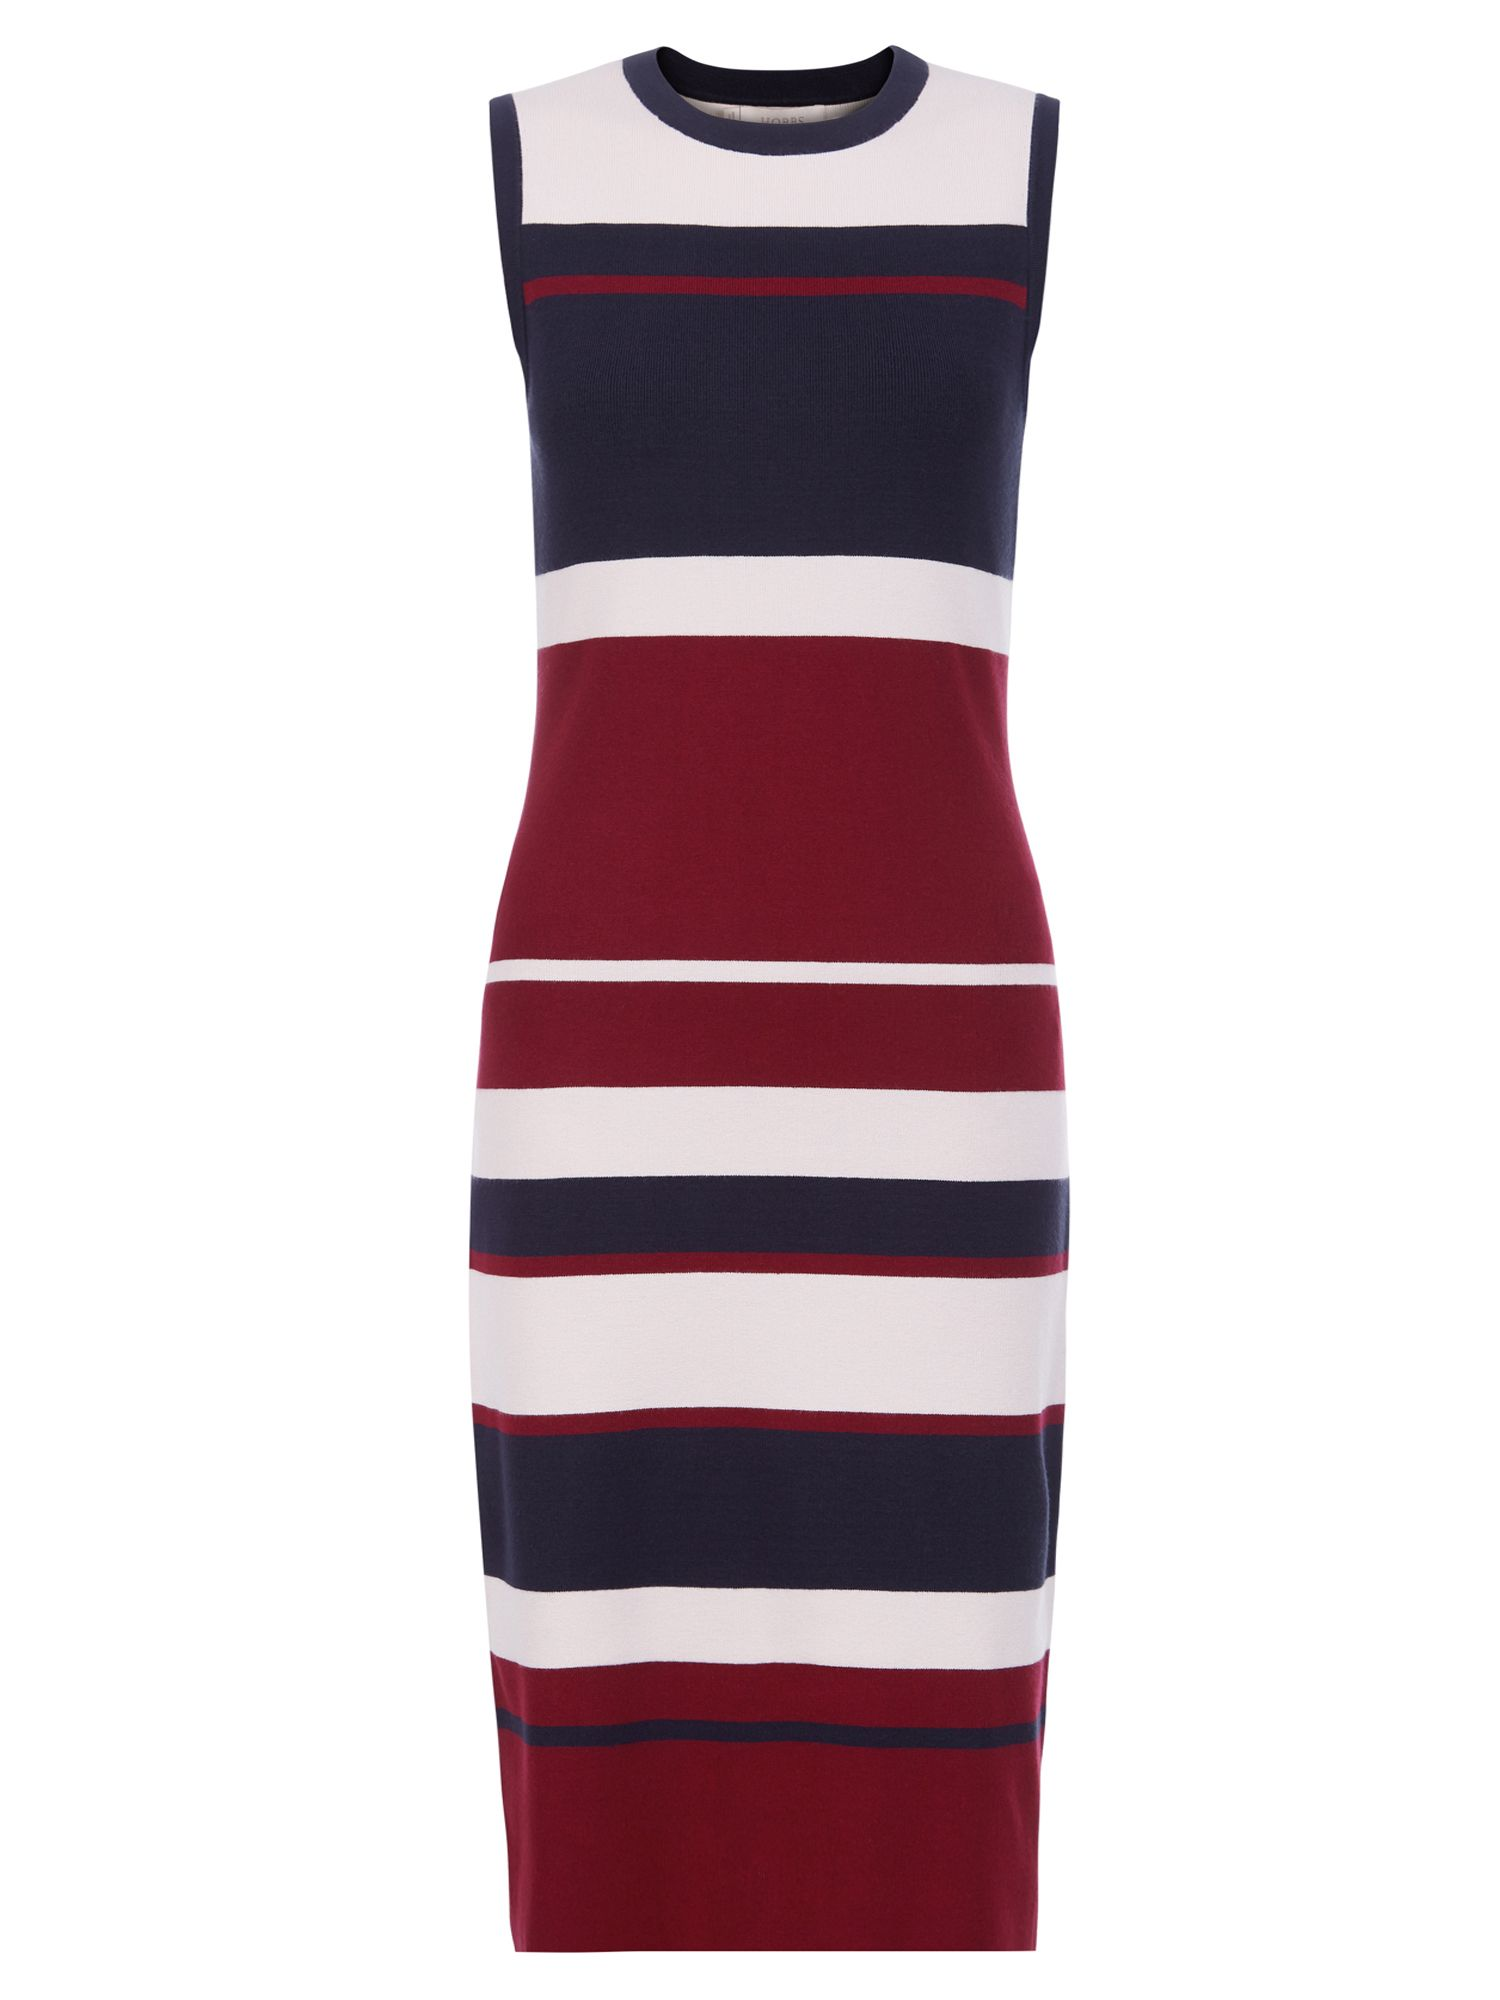 Hobbs Grace Dress, Multi-Coloured